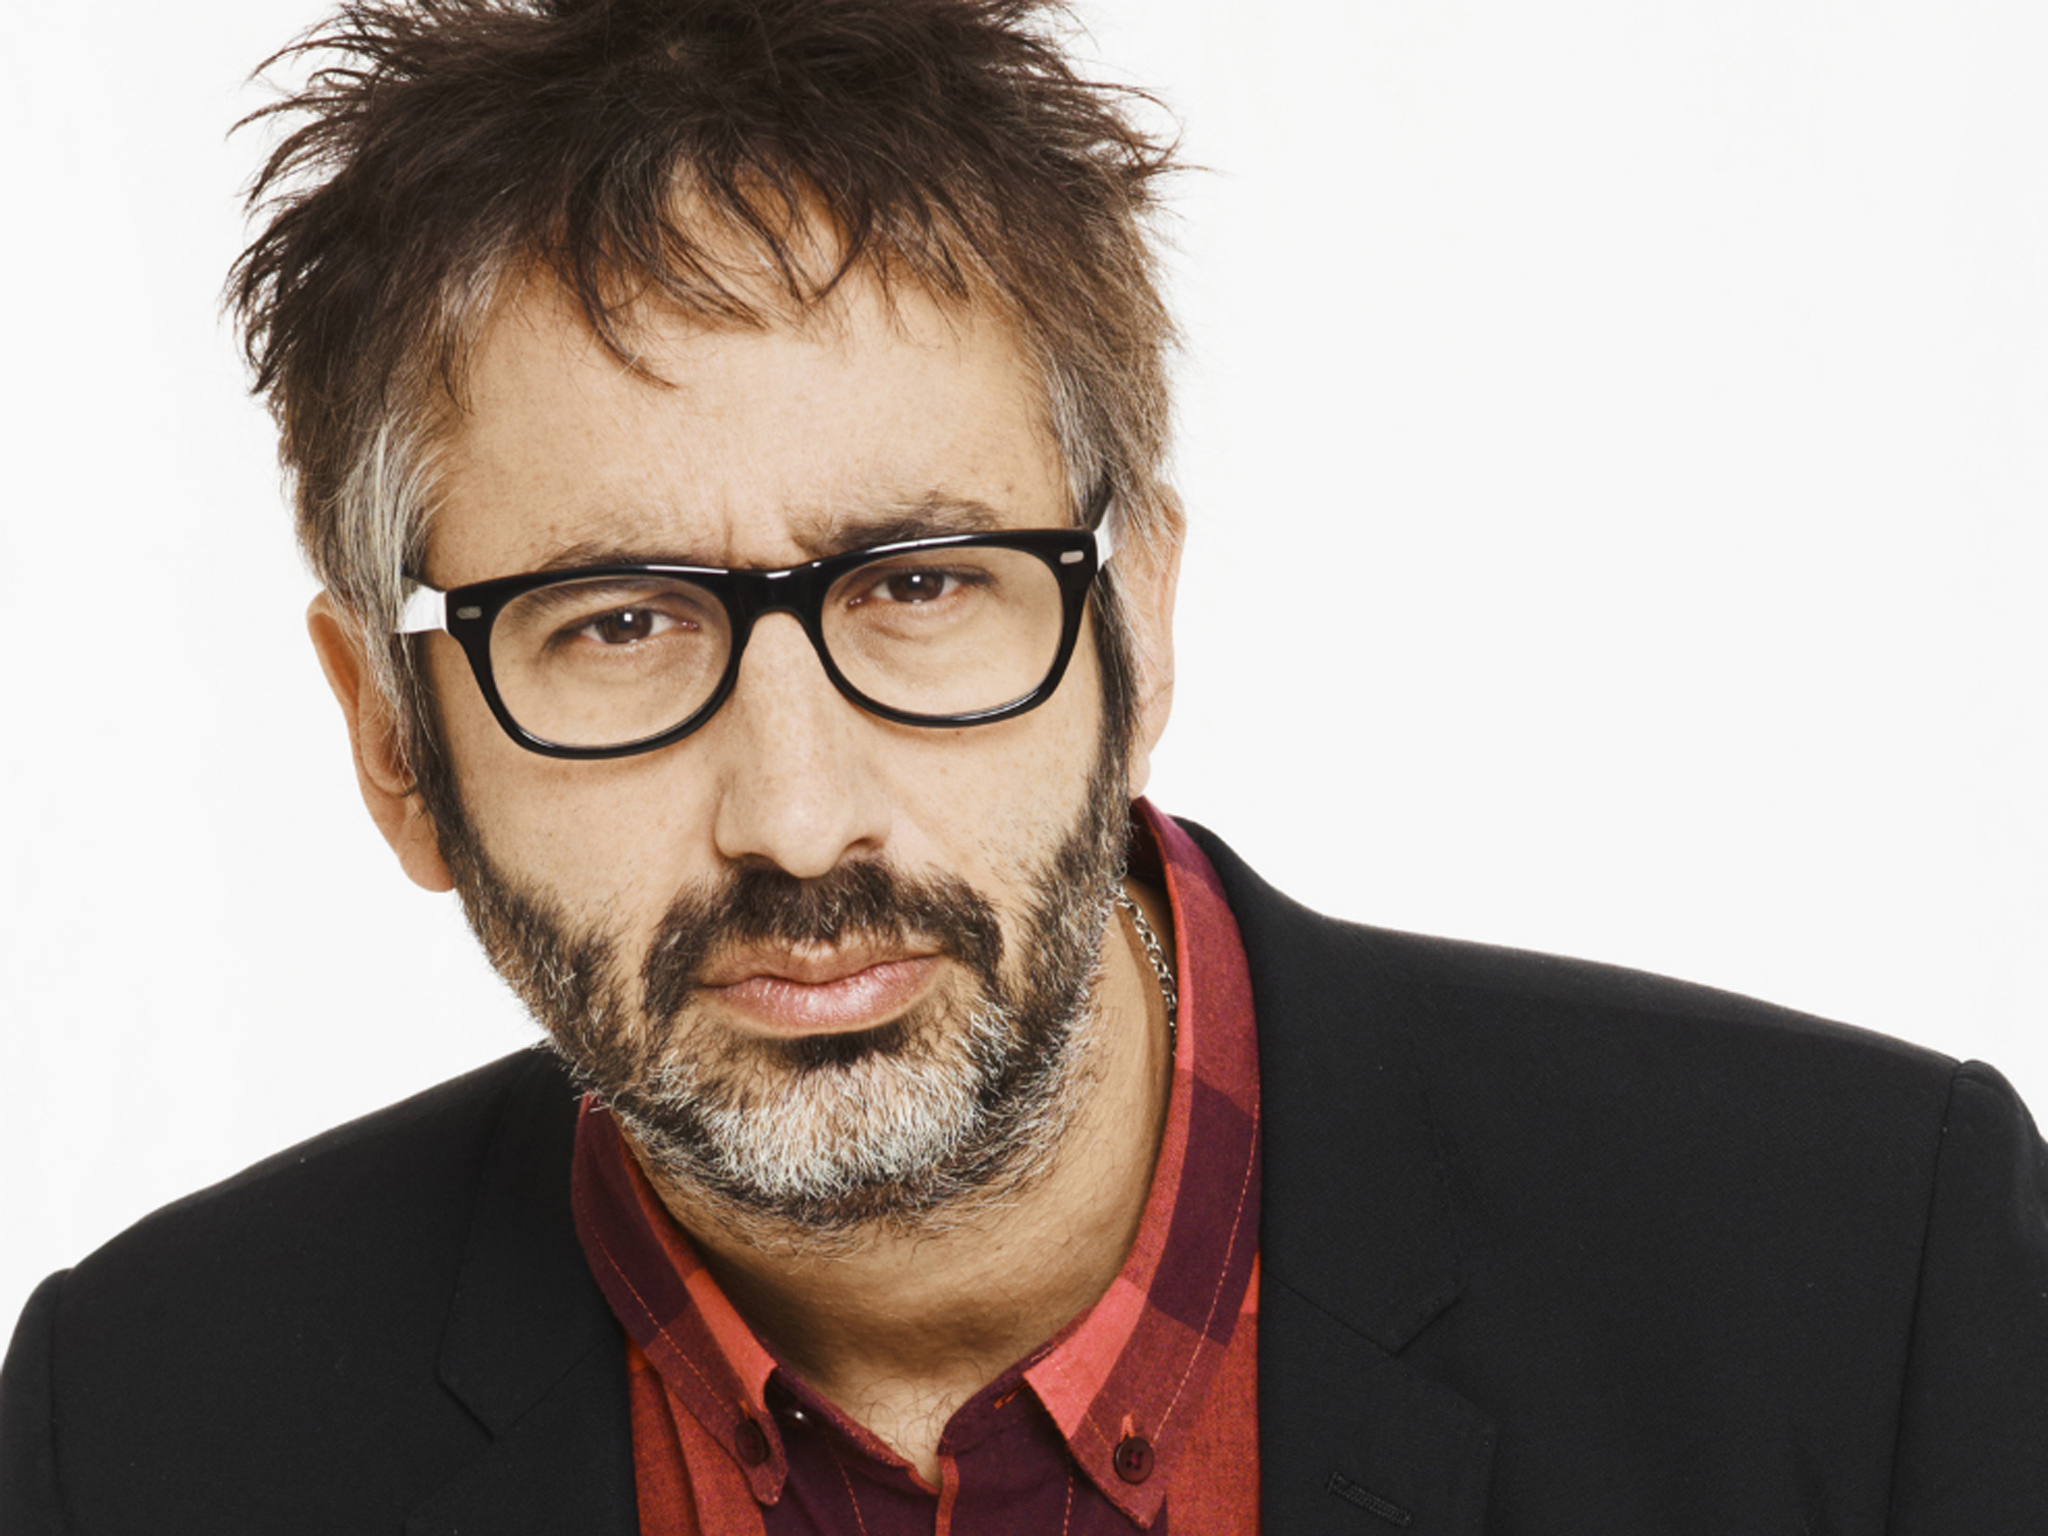 The 100 best comedy movies, David Baddiel